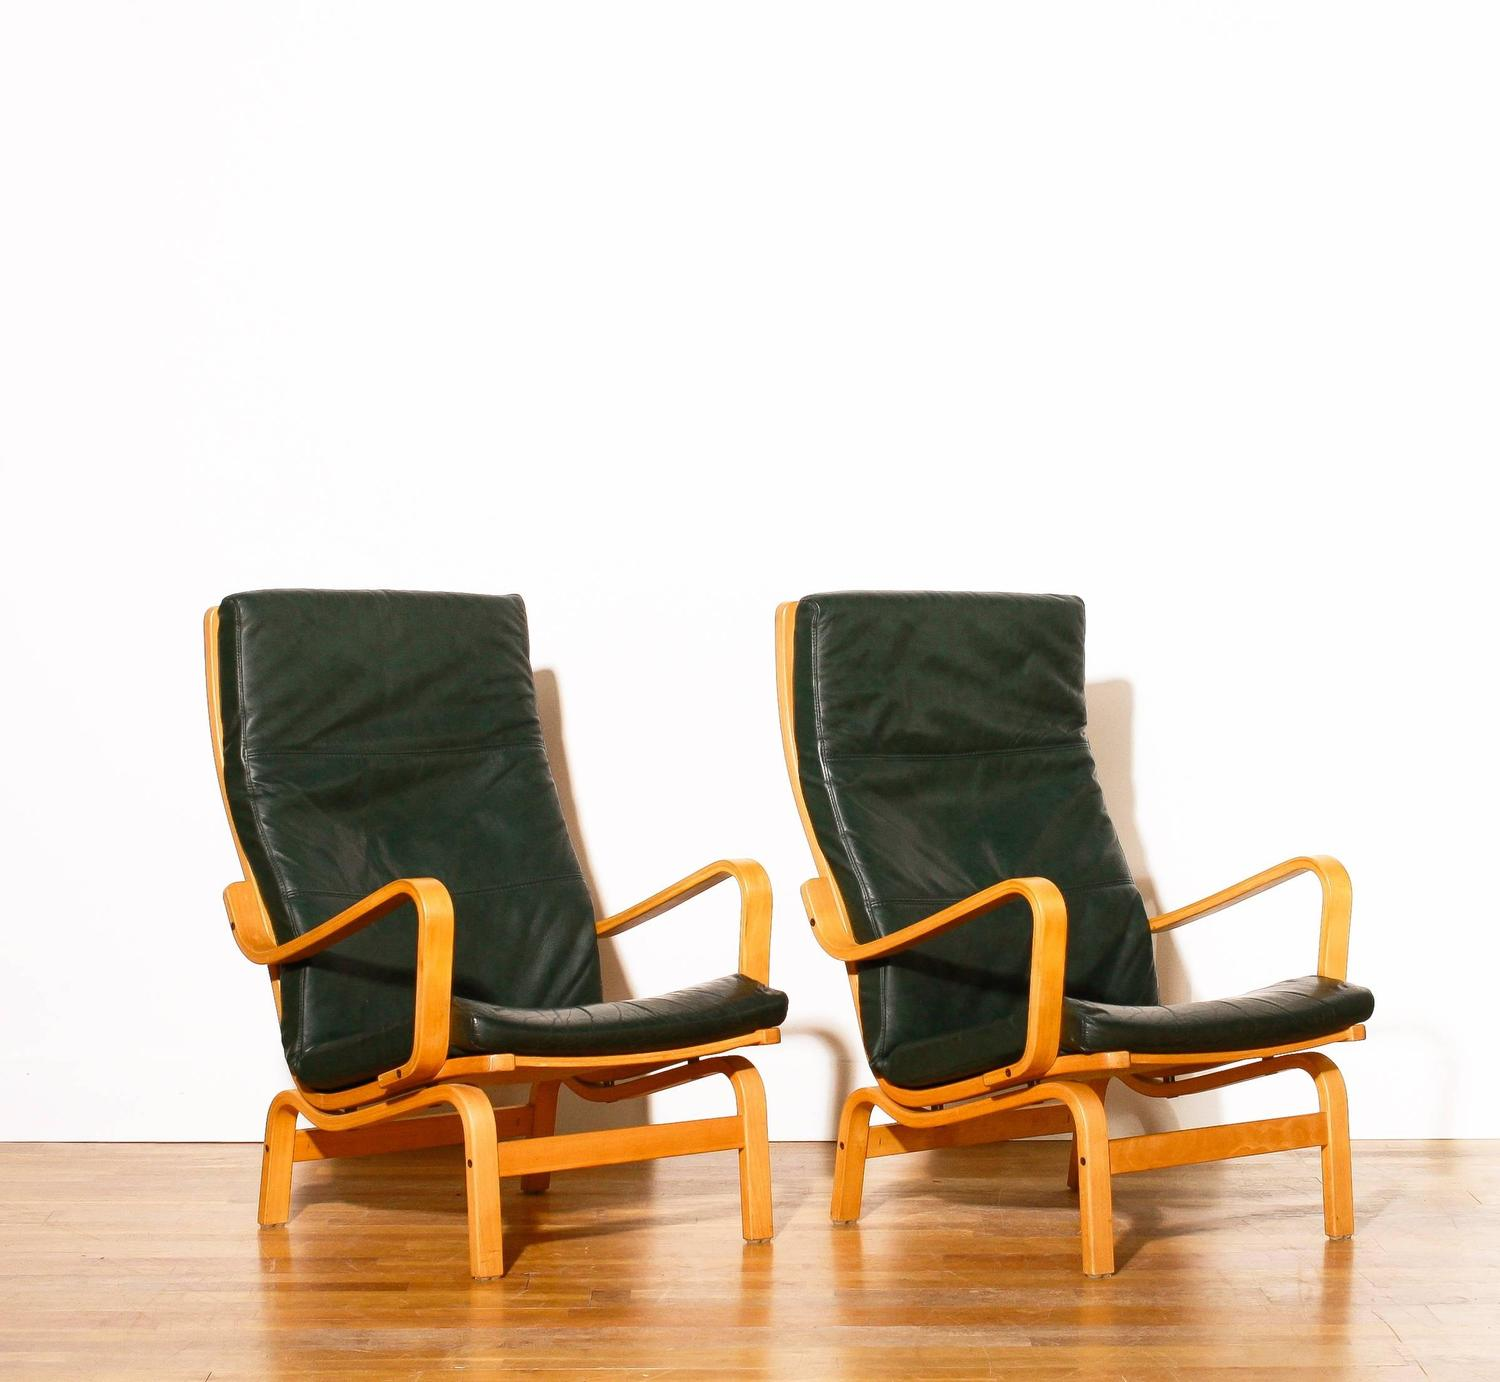 Yngve Ekström for Swedese, Set of Two'Contino' Leather Lounge Chairs, 1980s For Sale at 1stdibs